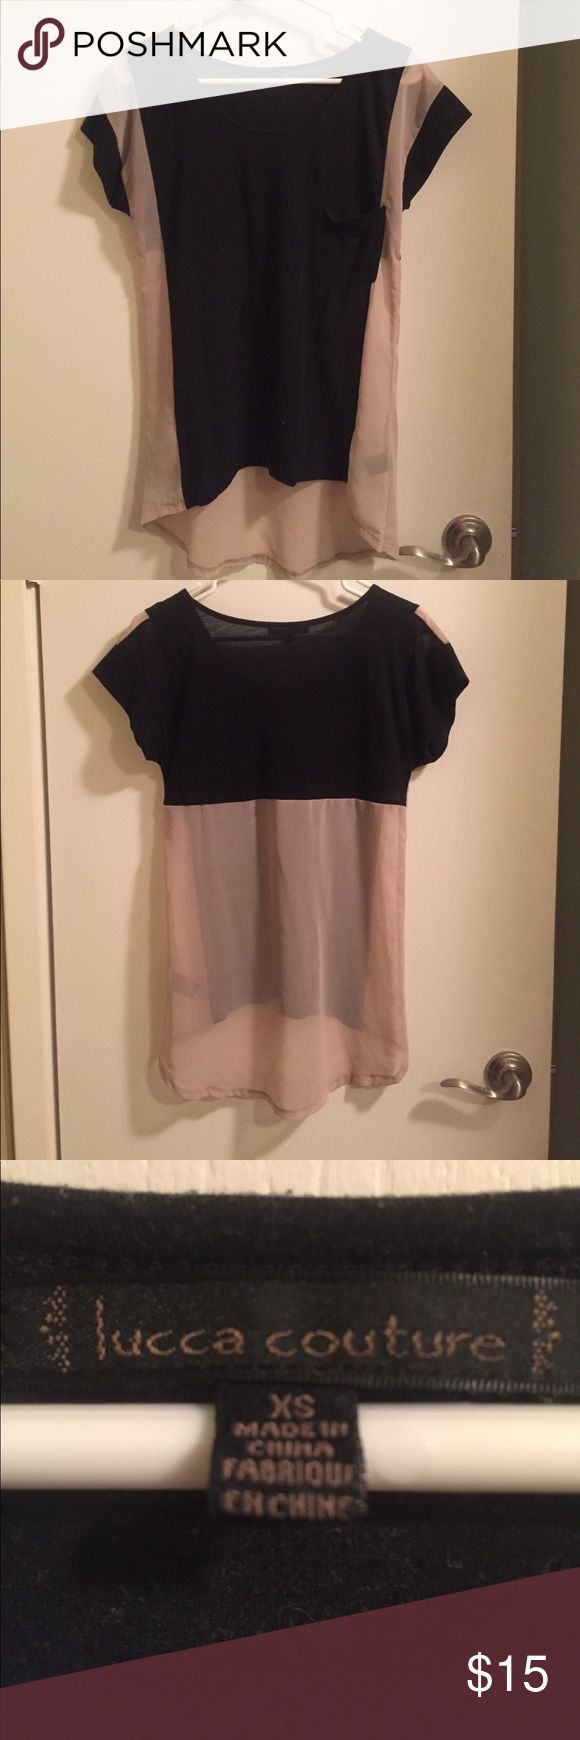 Black and beige short sleeve top Black and beige scoopneck top. Black part is cotton and beige part is sheer, and has one pocket Forever 21 Tops Tees - Short Sleeve